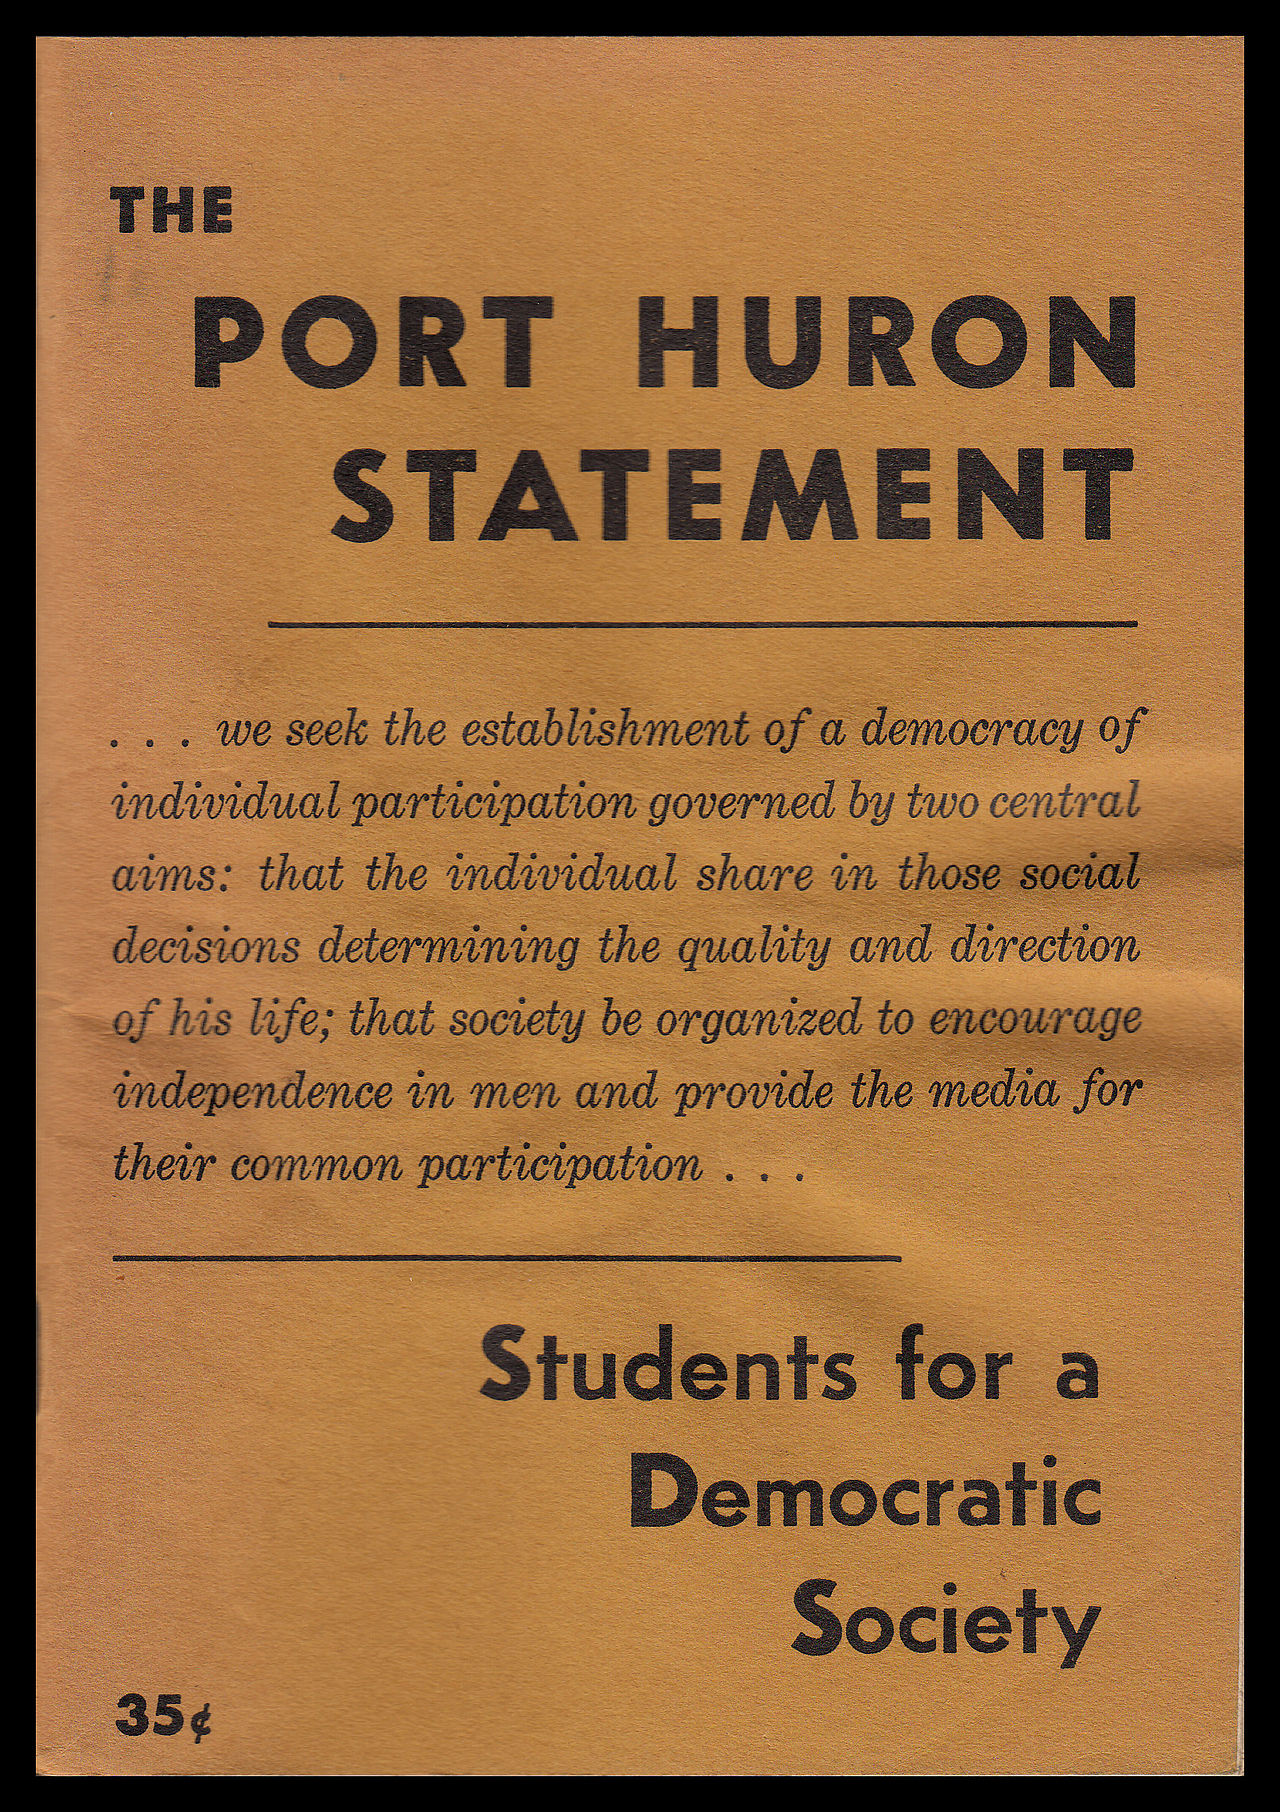 New student activism stops on the road to new solidarities cover of the 2nd edition of the port huron statement public domain monicamarmolfo Images